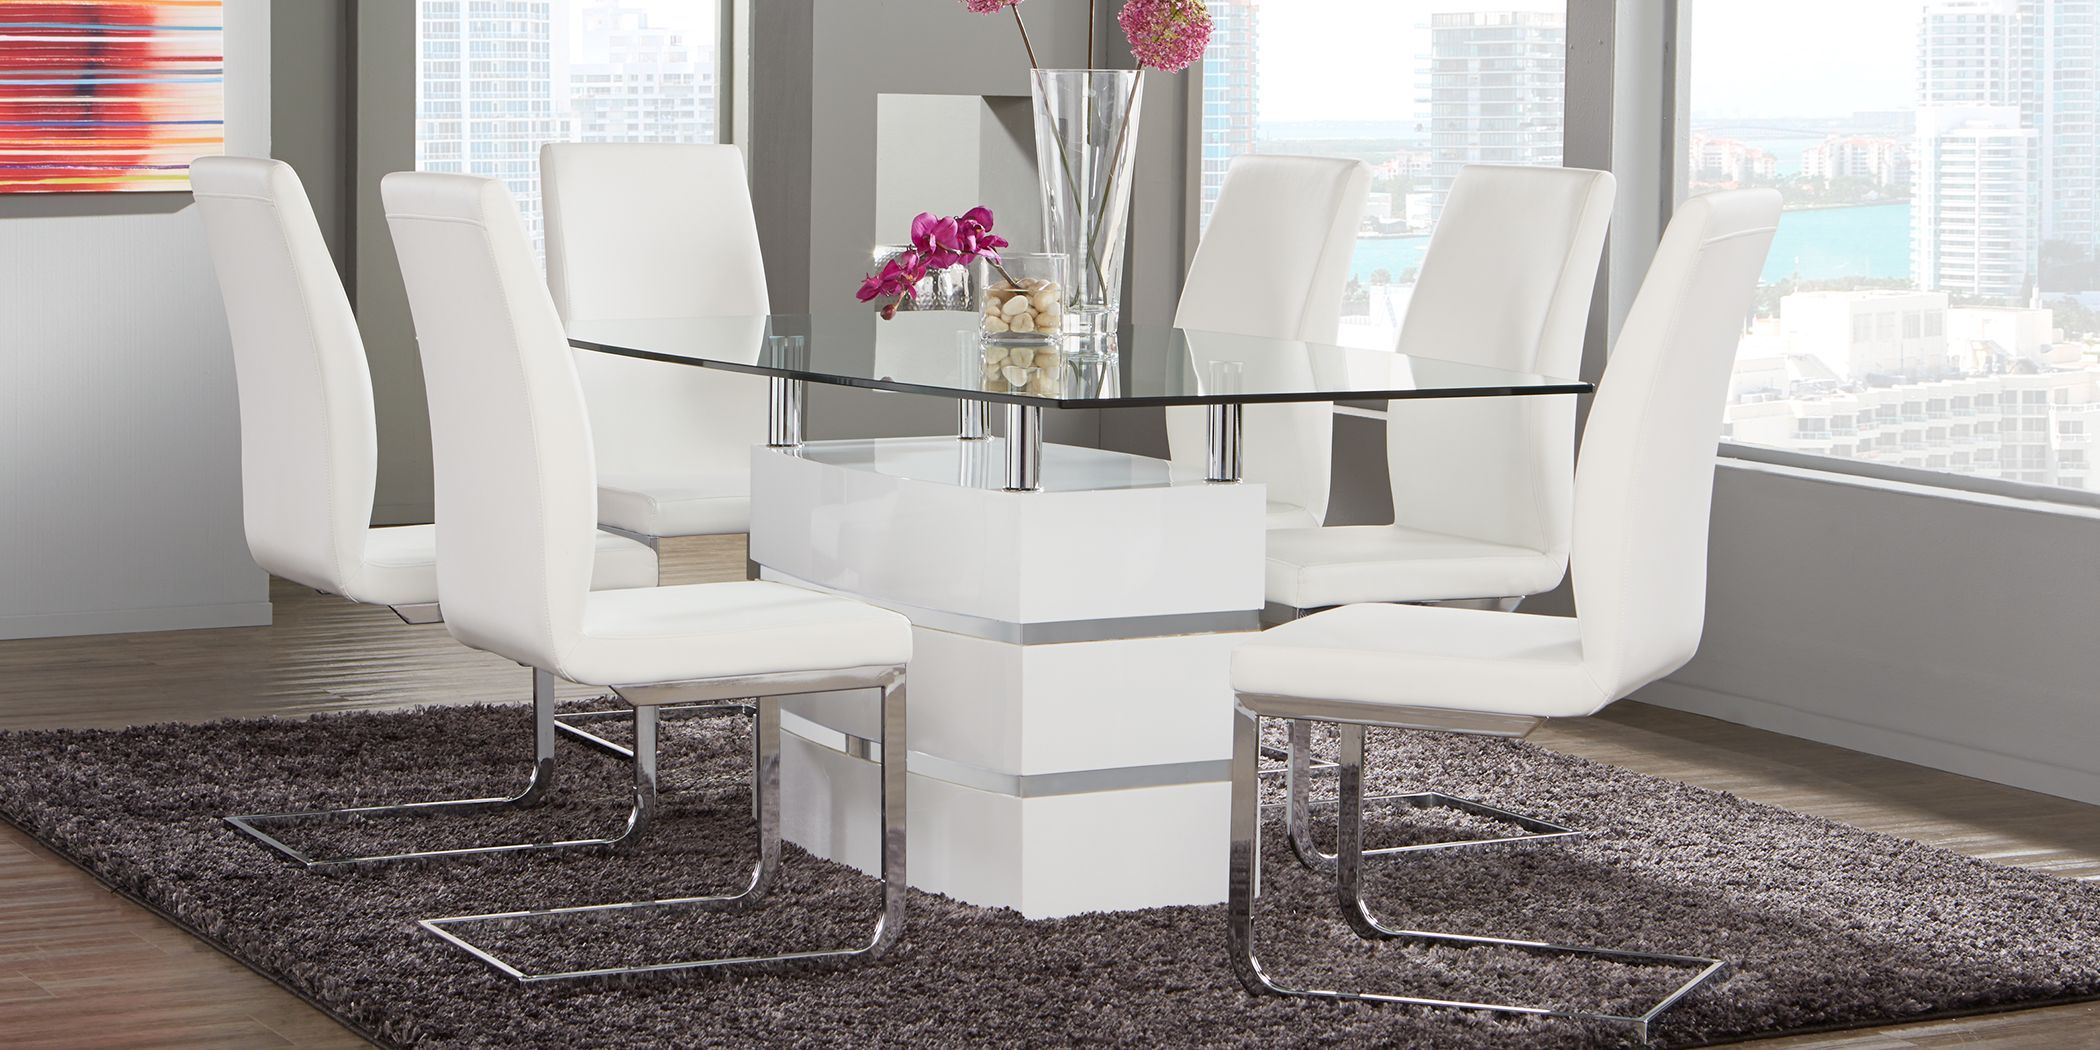 Tria White Rectangle Dining Table Rooms To Go Grey Dining Room Furniture White Dining Room Furniture Dining Room Sets Rooms to go dining room table sets